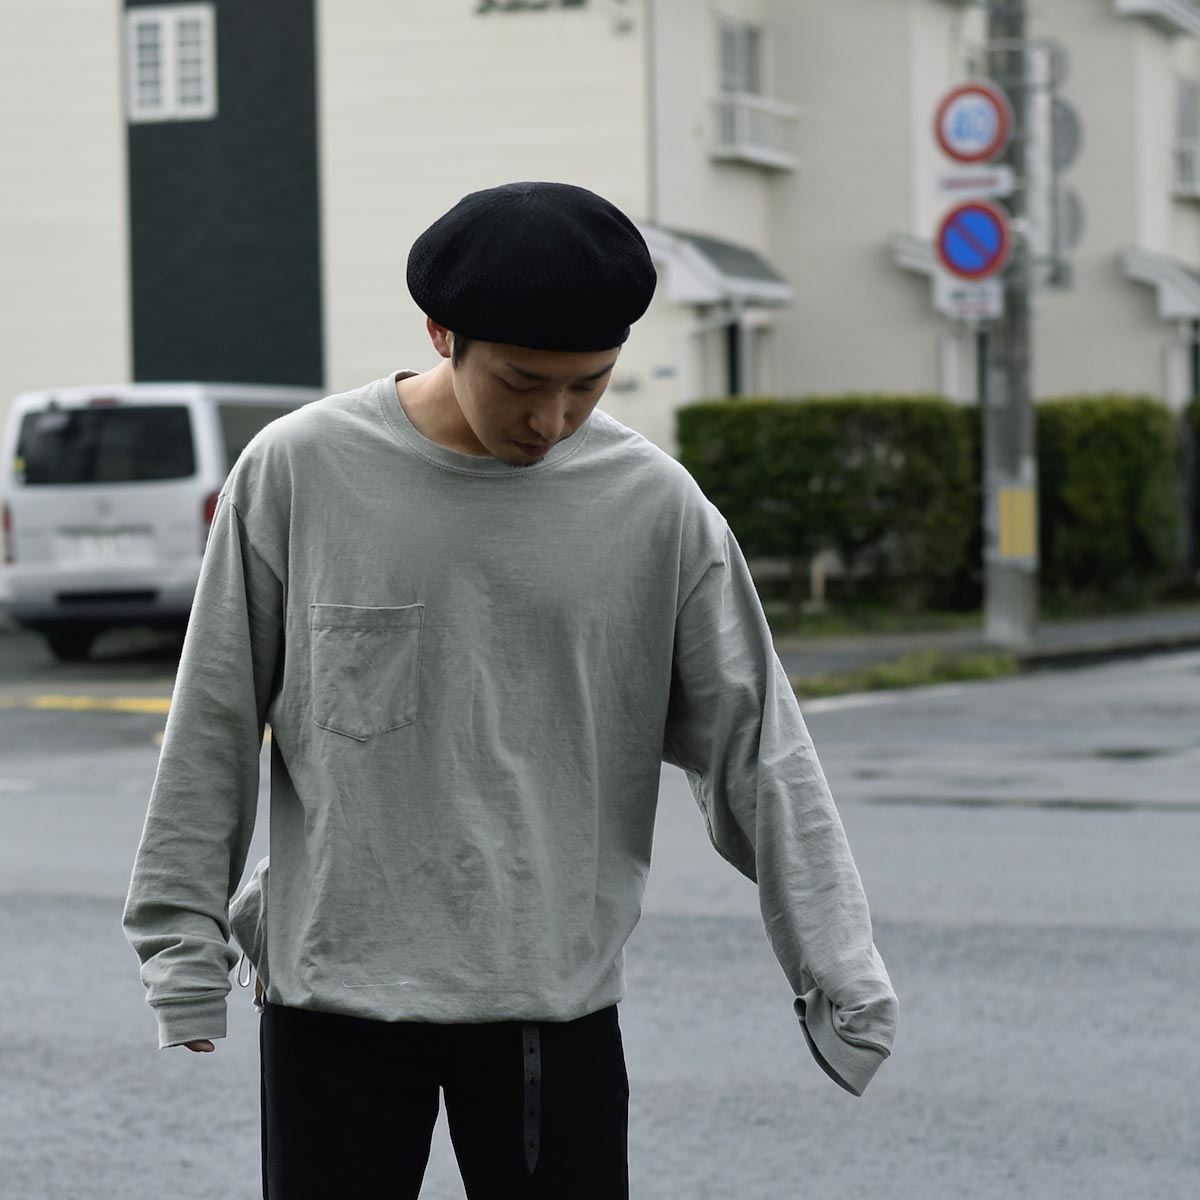 HESTRADA GEE-WIZ / SWITCH L/S Tee (Stone Green)162cm XL、StoneGreen着用